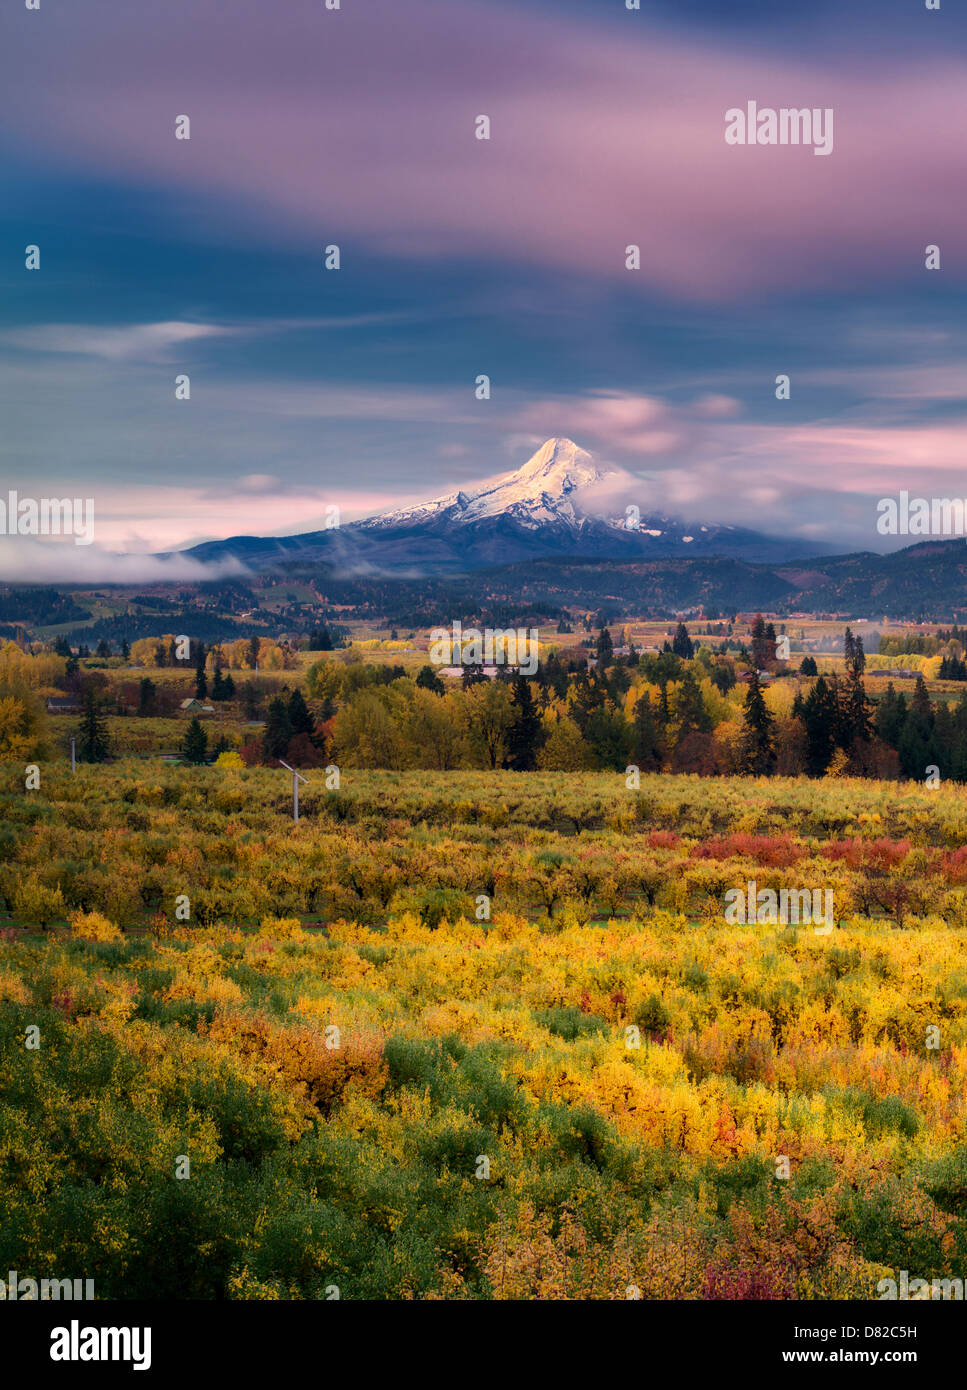 Fruit orchards in fall color with Mt. Hood. Hood River Valley, Oregon - Stock Image